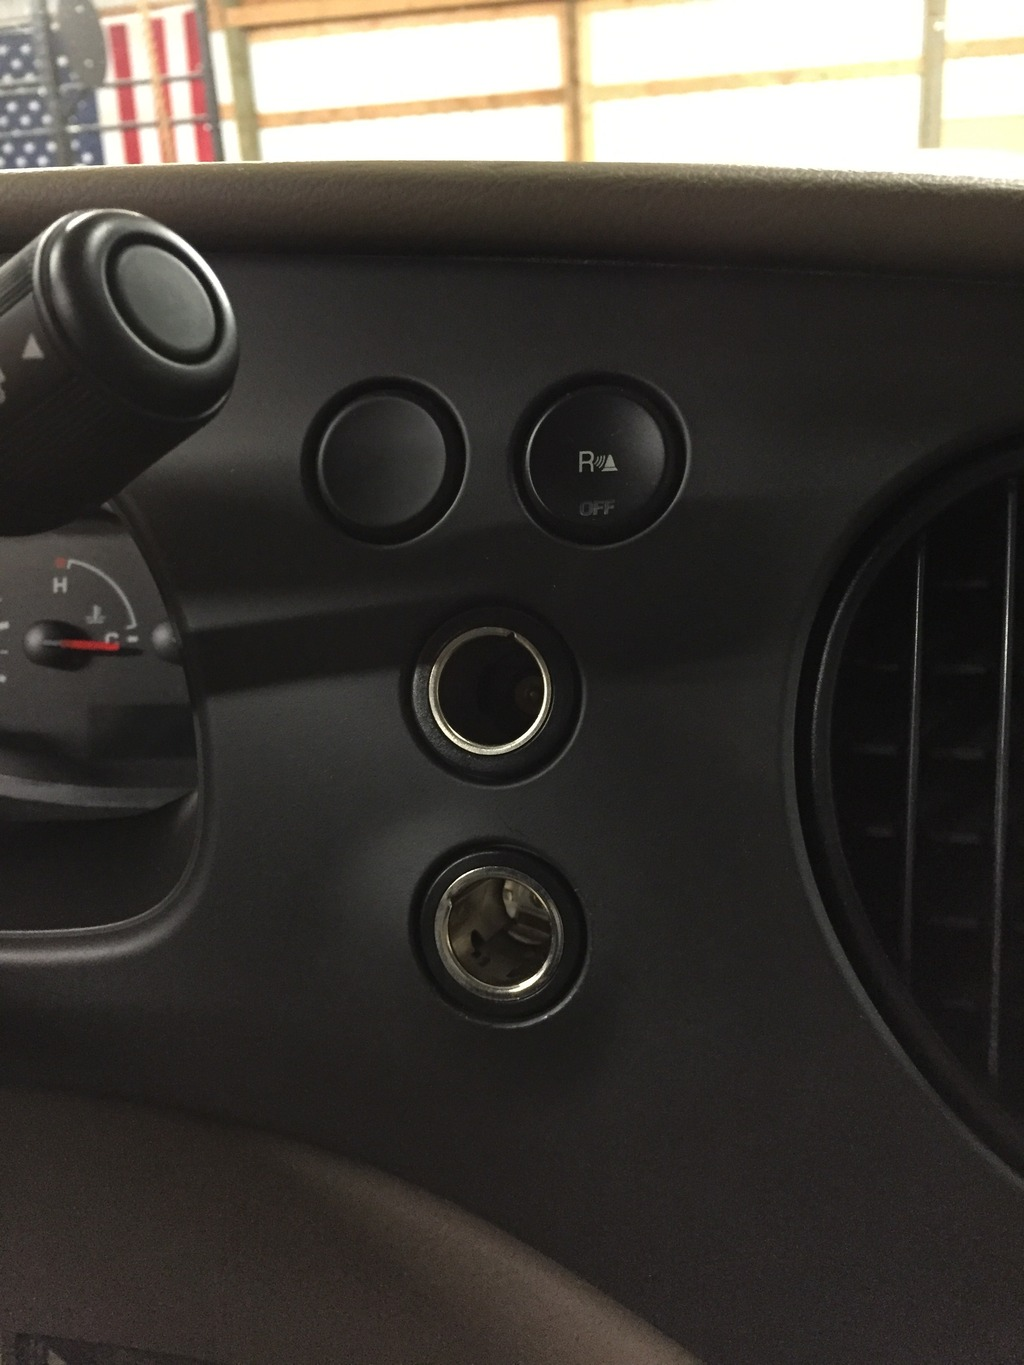 Cigarette Lighter Socket Removal Sportsmobile Forum 2000 Ford Mustang Door Panel This Image Has Been Resized Click Bar To View The Full